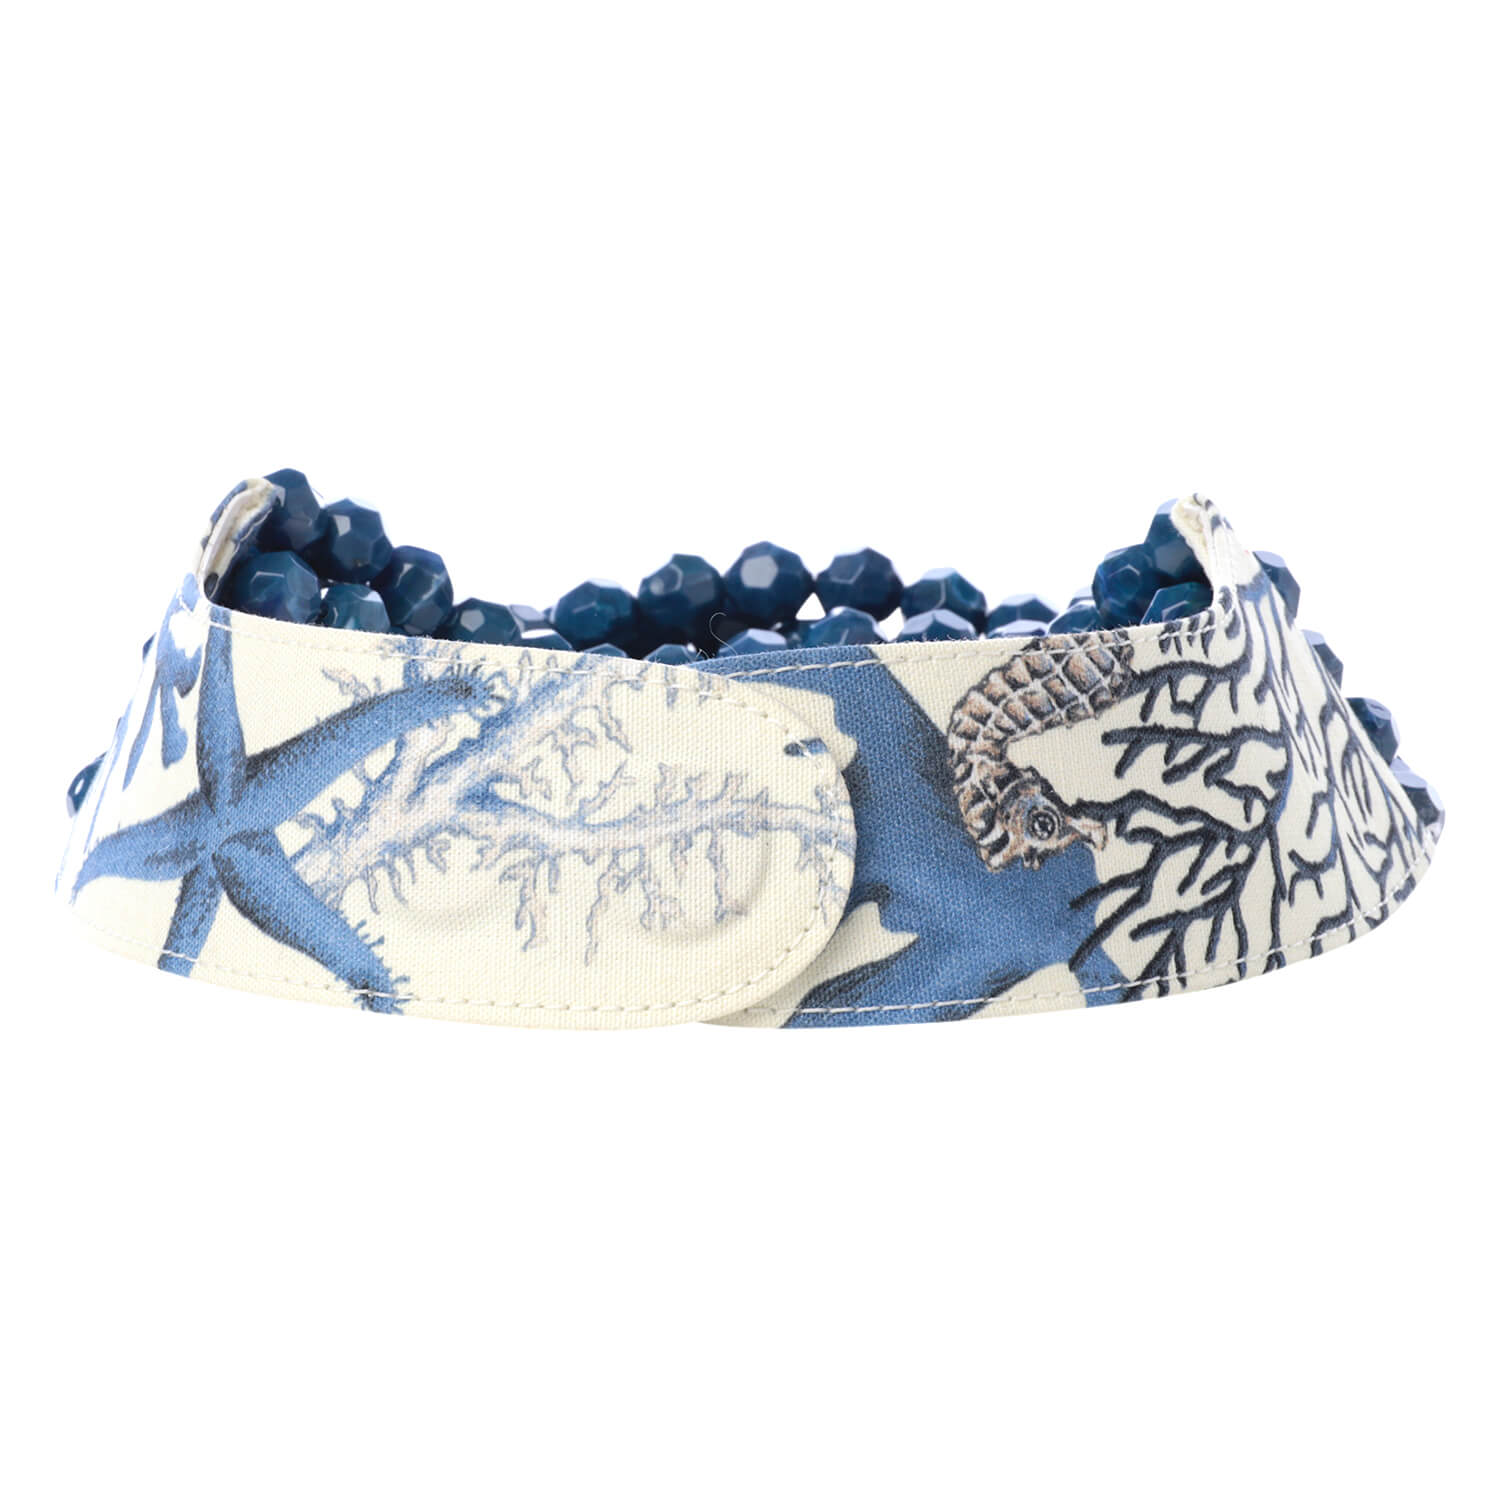 Printed Floral Blue Coral - Fairchild Baldwin - Handmade in Italy